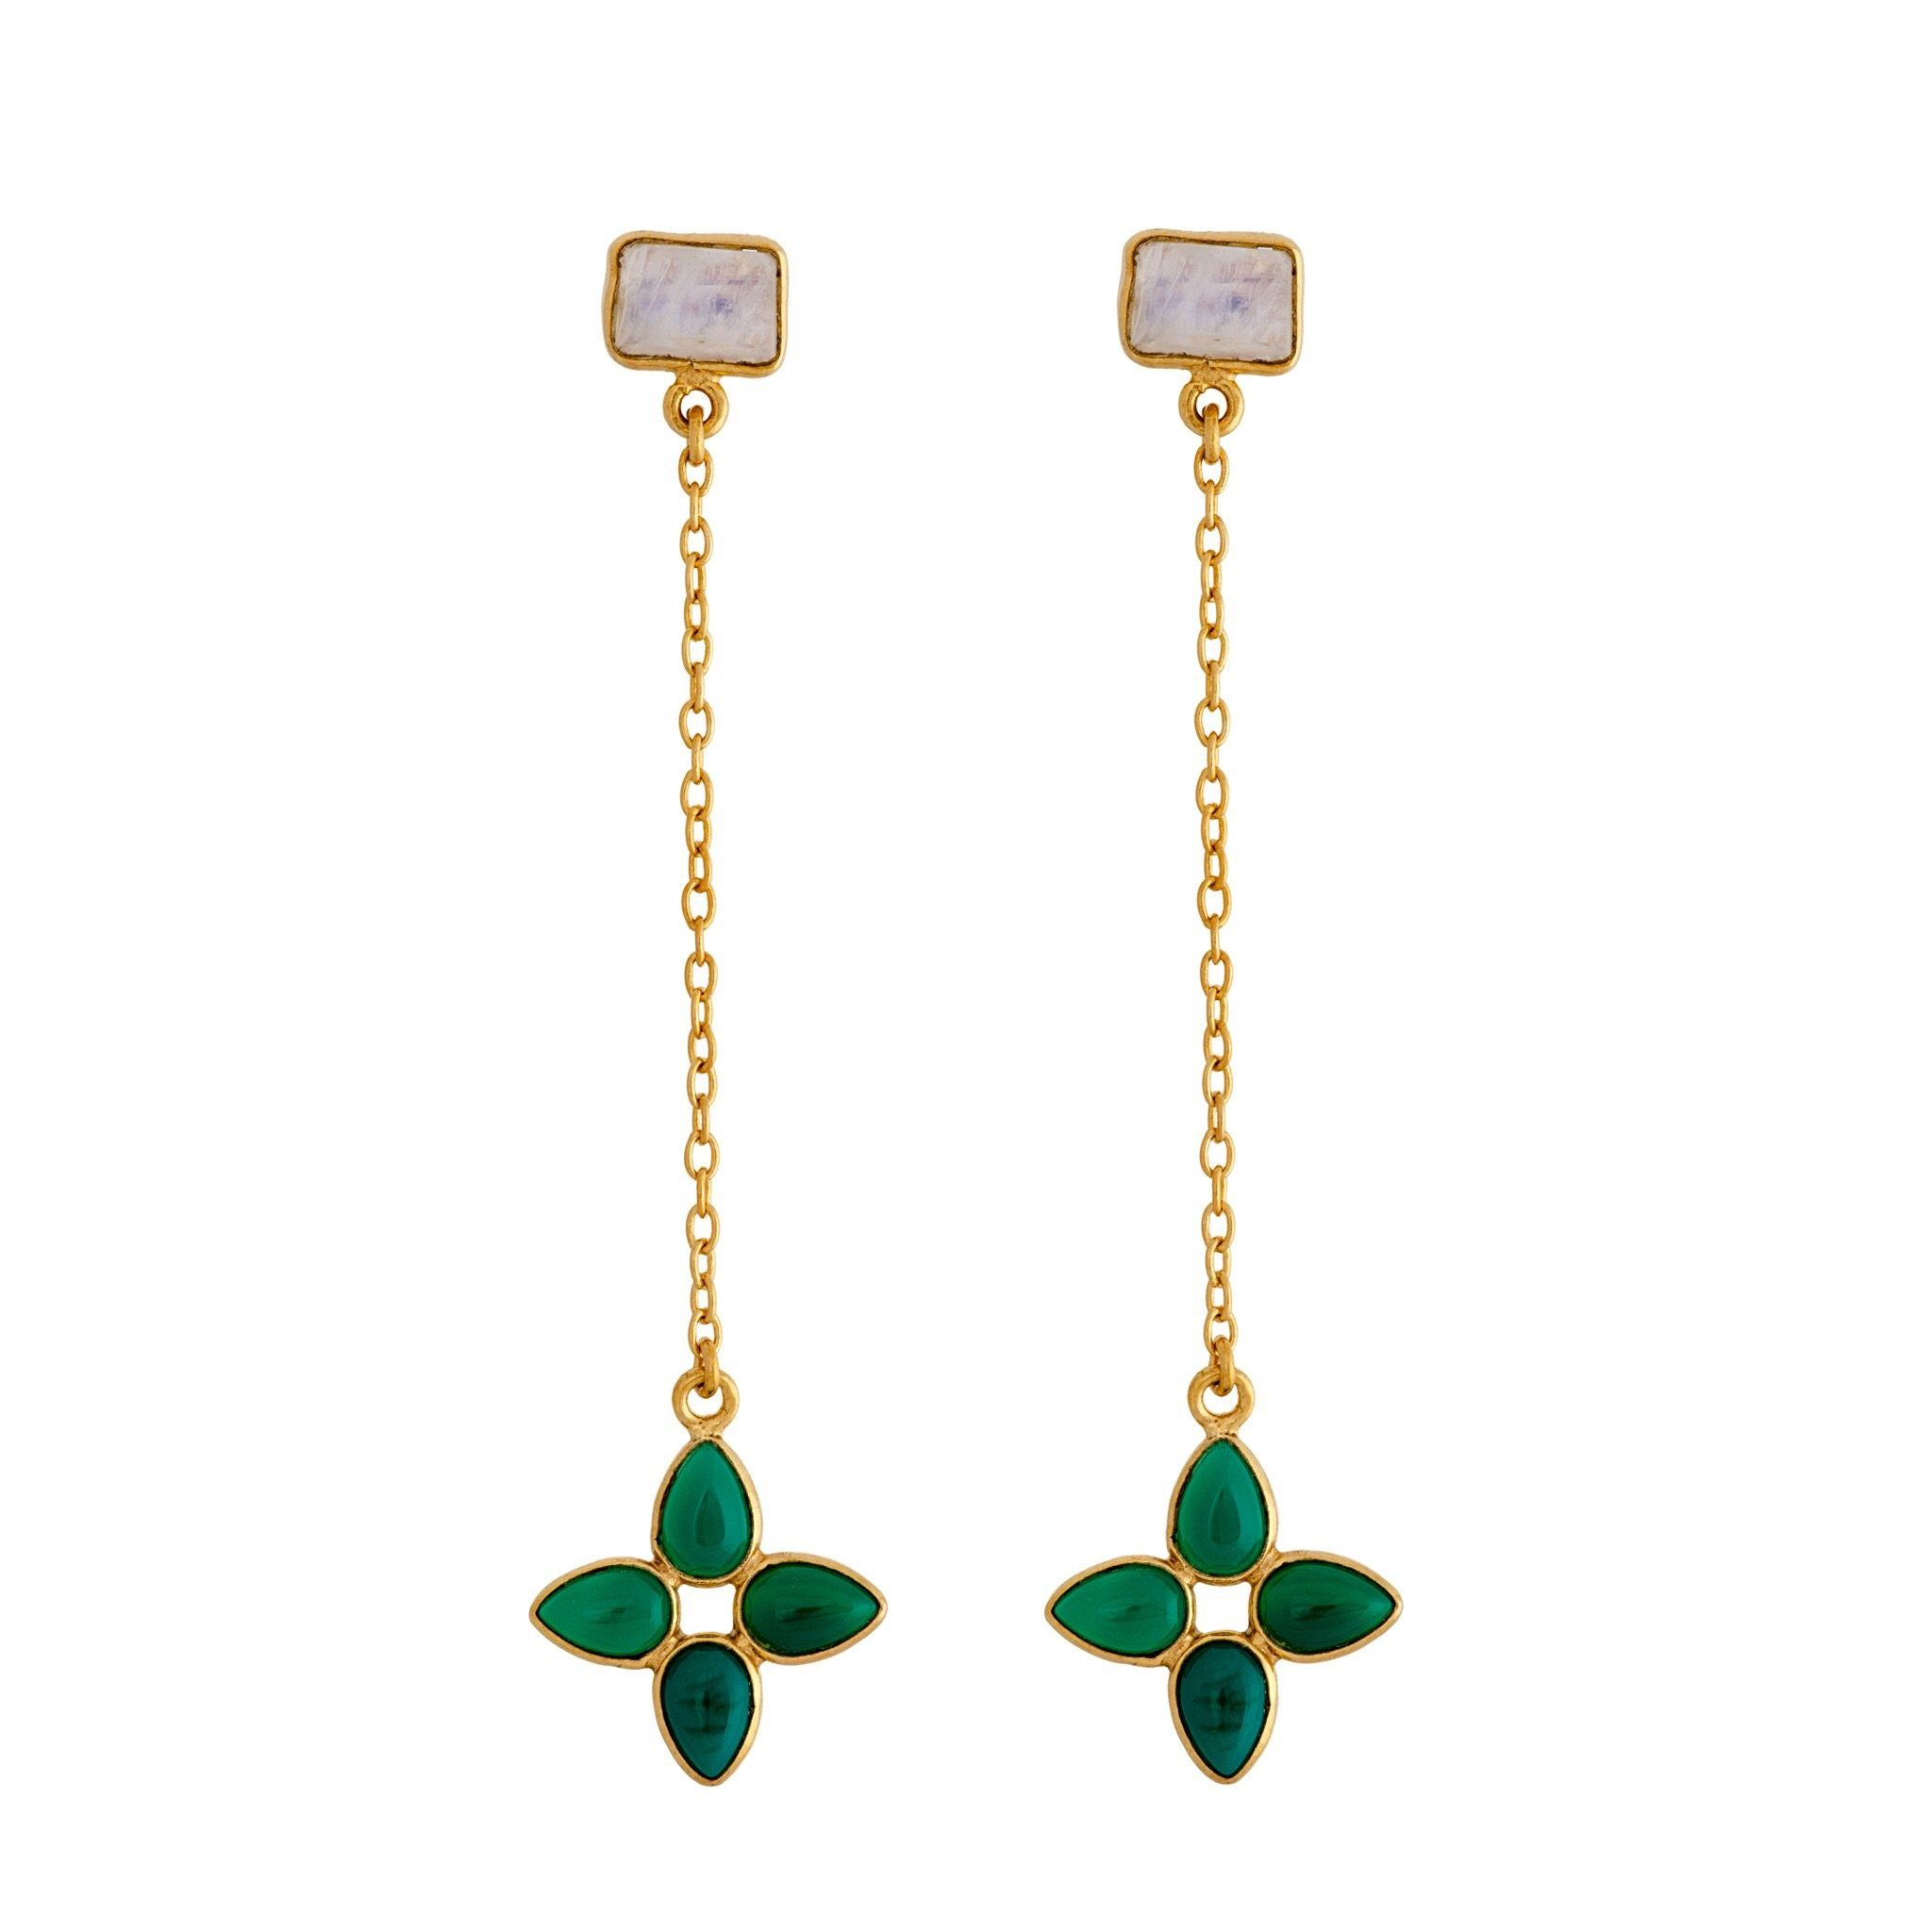 FLORA green onyx earrings